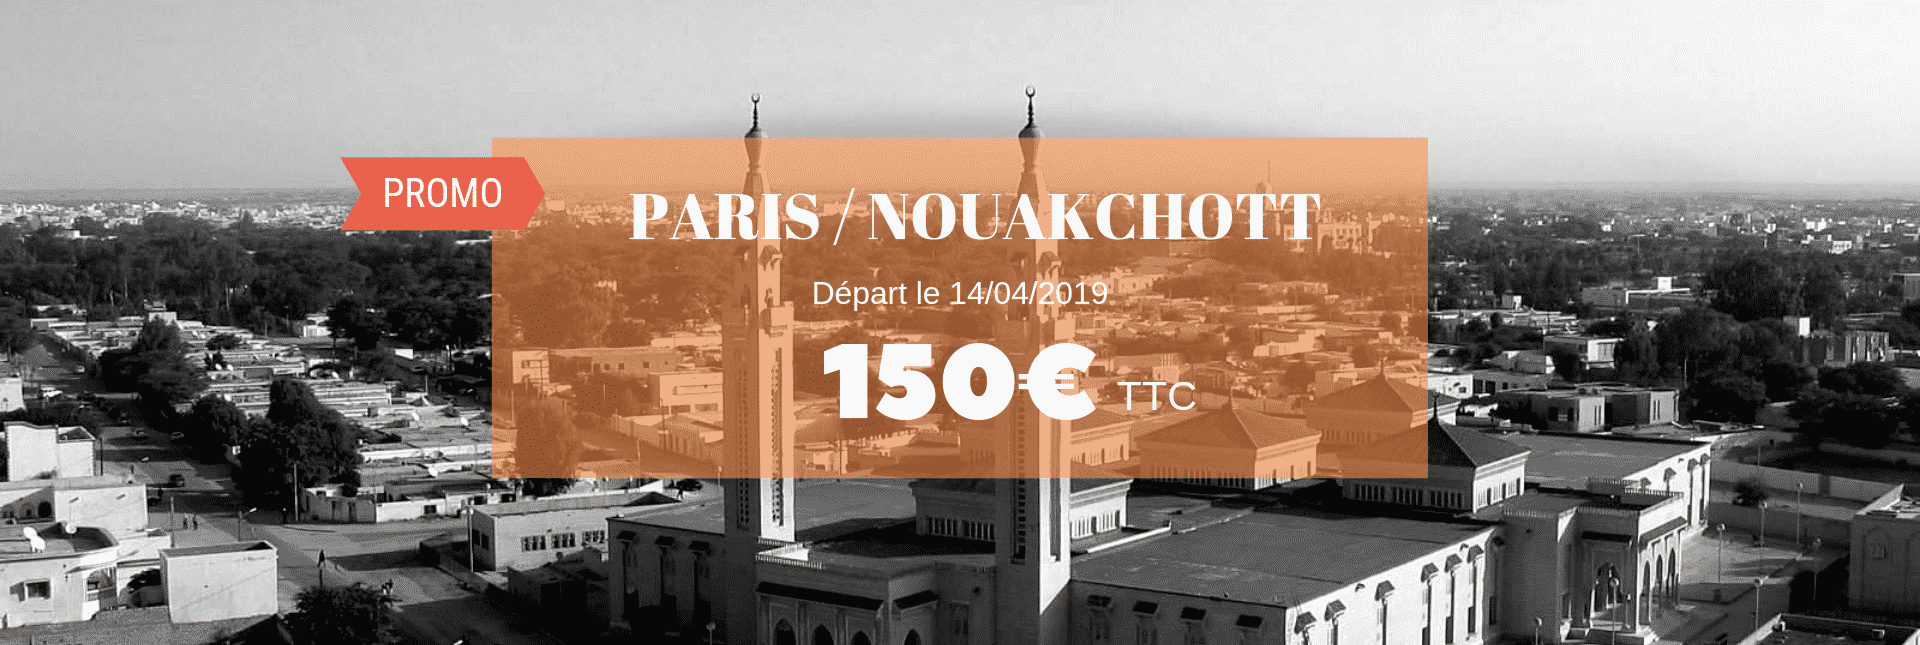 Promo vol Paris/Nouakchott 150€ TTC